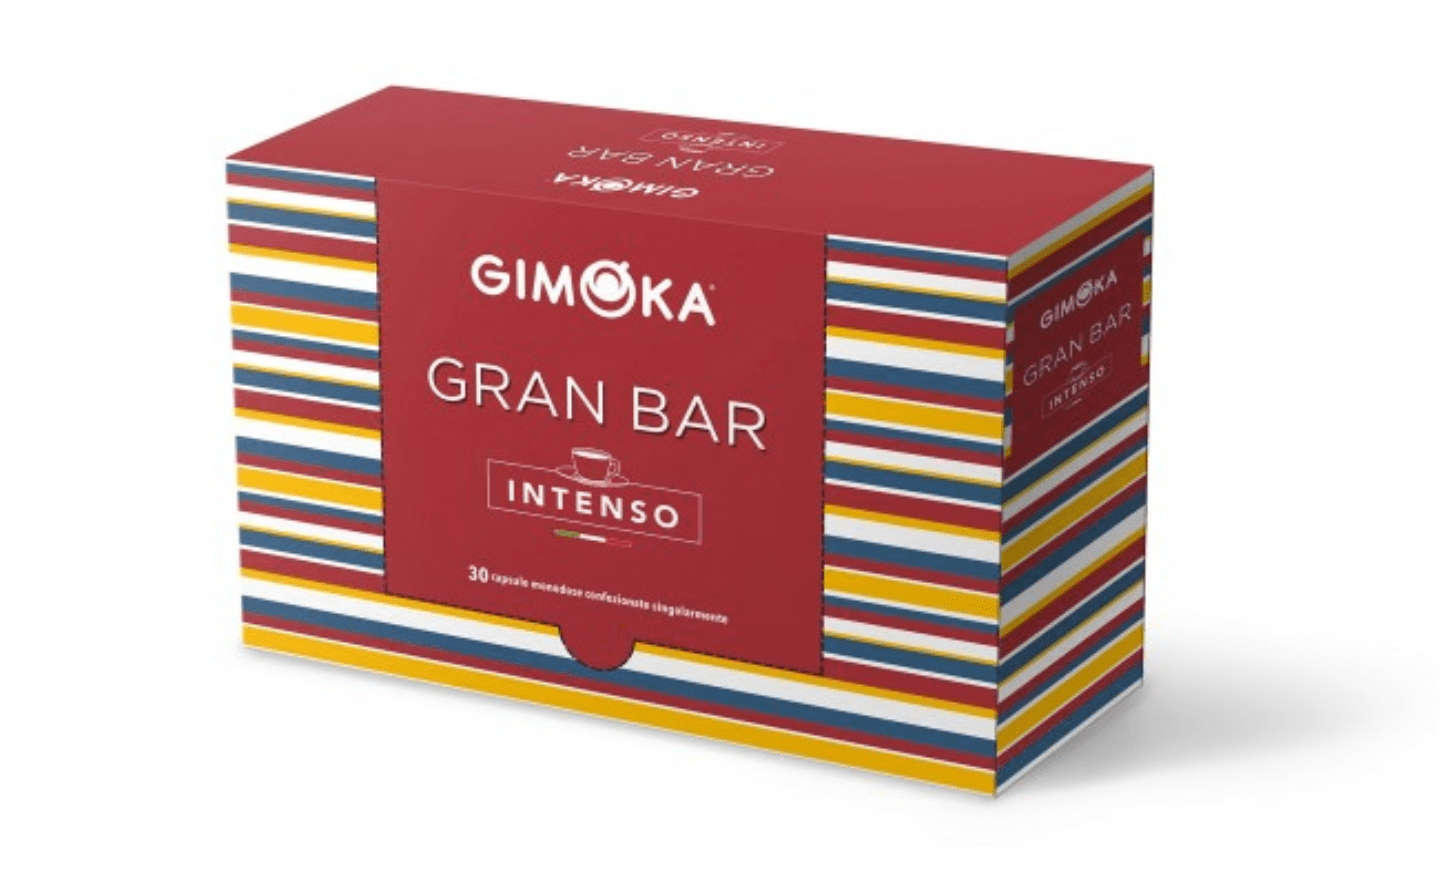 150 CAPSULE CAFFE' 32mm GIMOKA Gran Bar